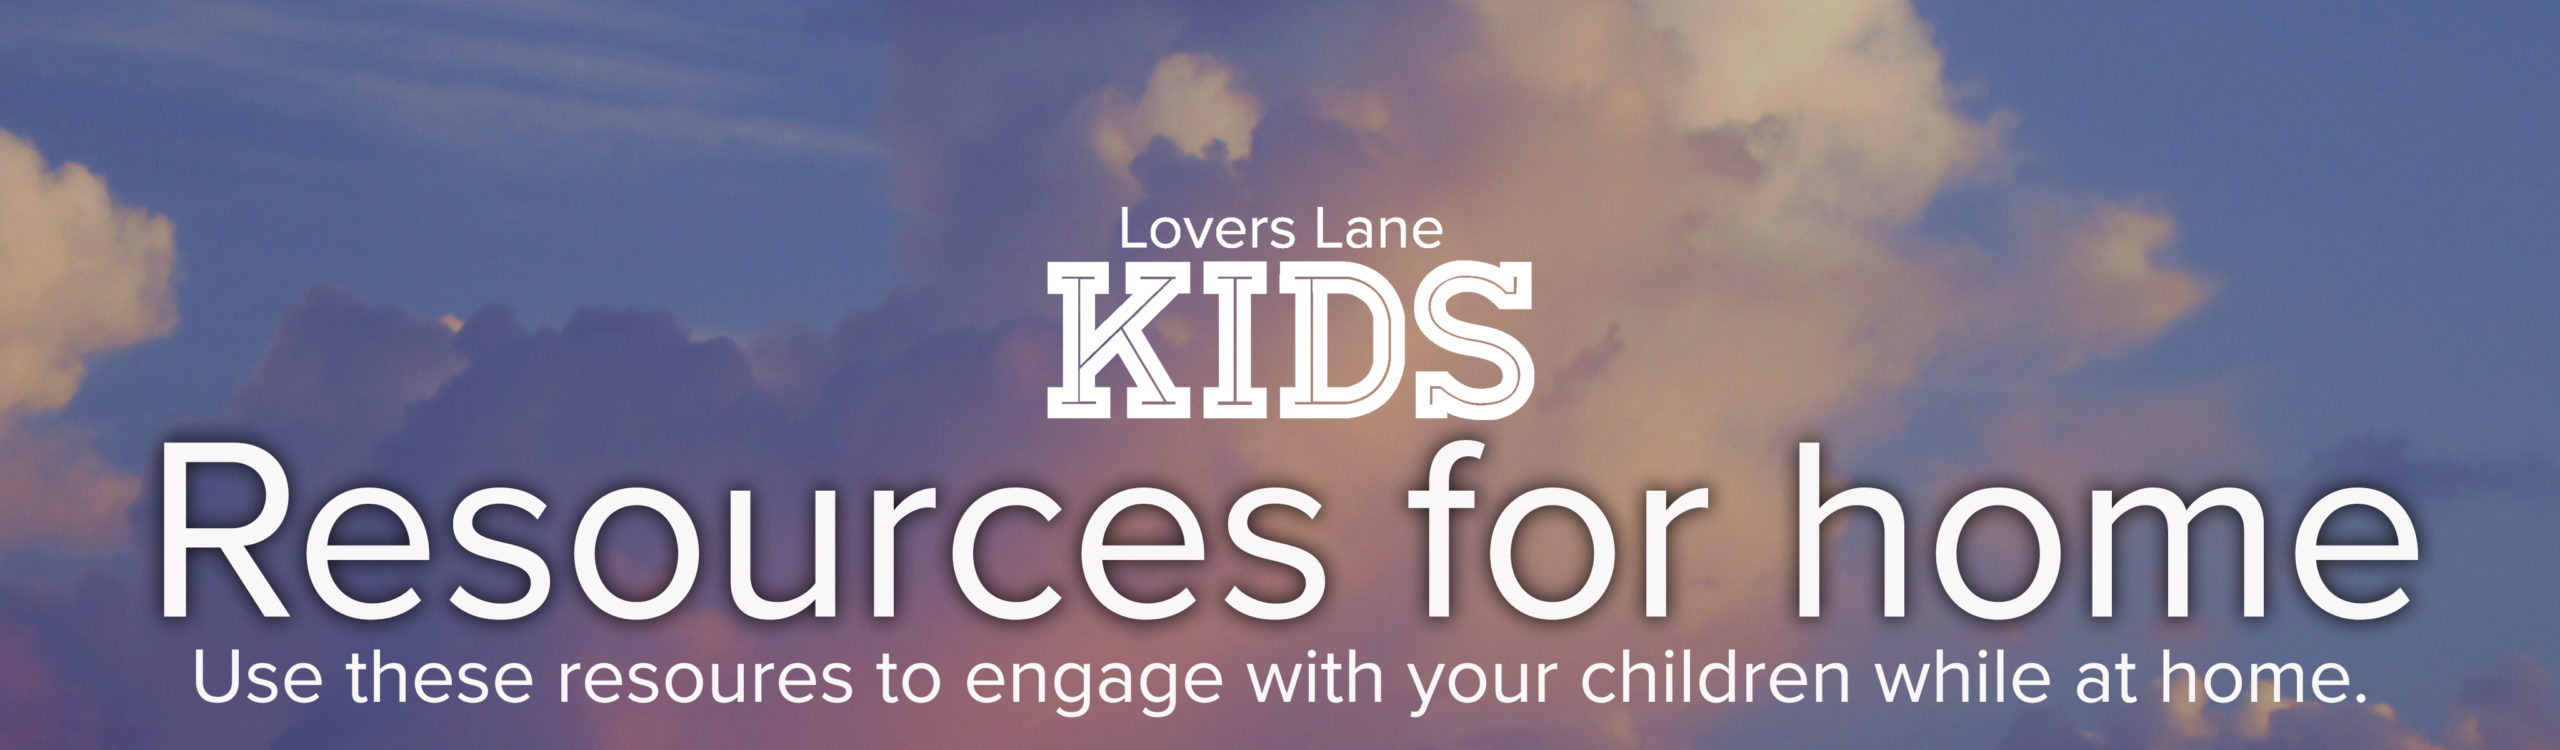 kidsonlineresources-promo-2